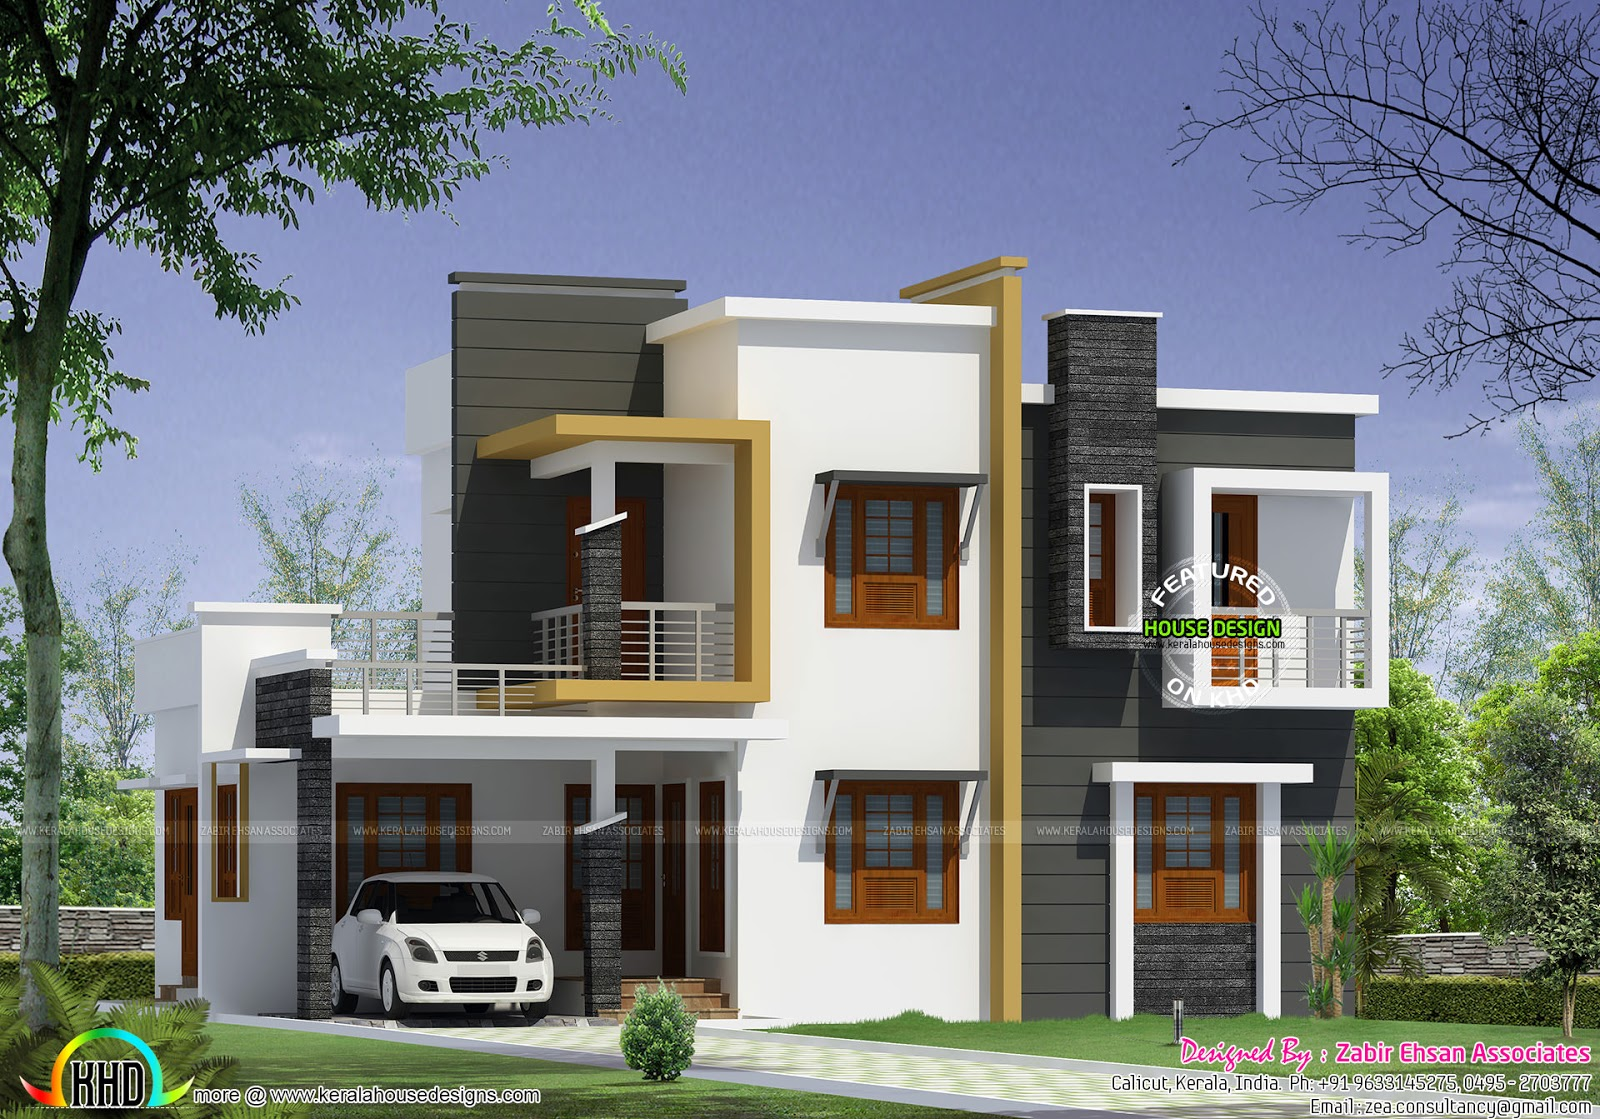 Box type modern house plan kerala home design and floor for Modern home plans with photos